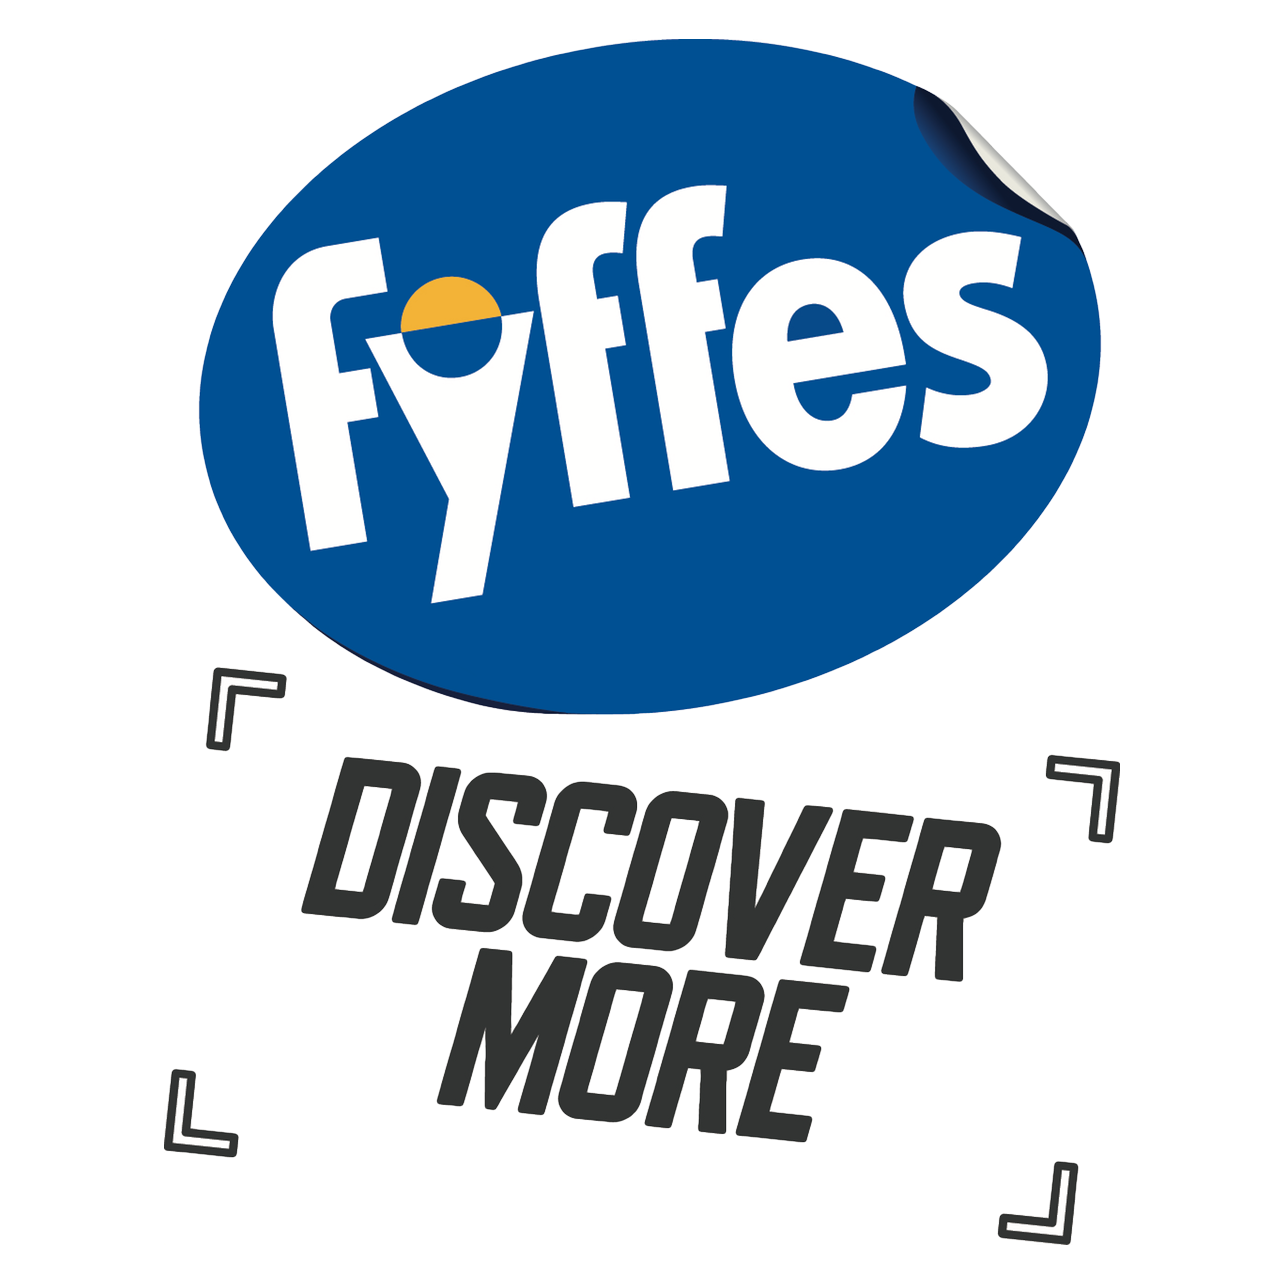 Fyffes_square.png